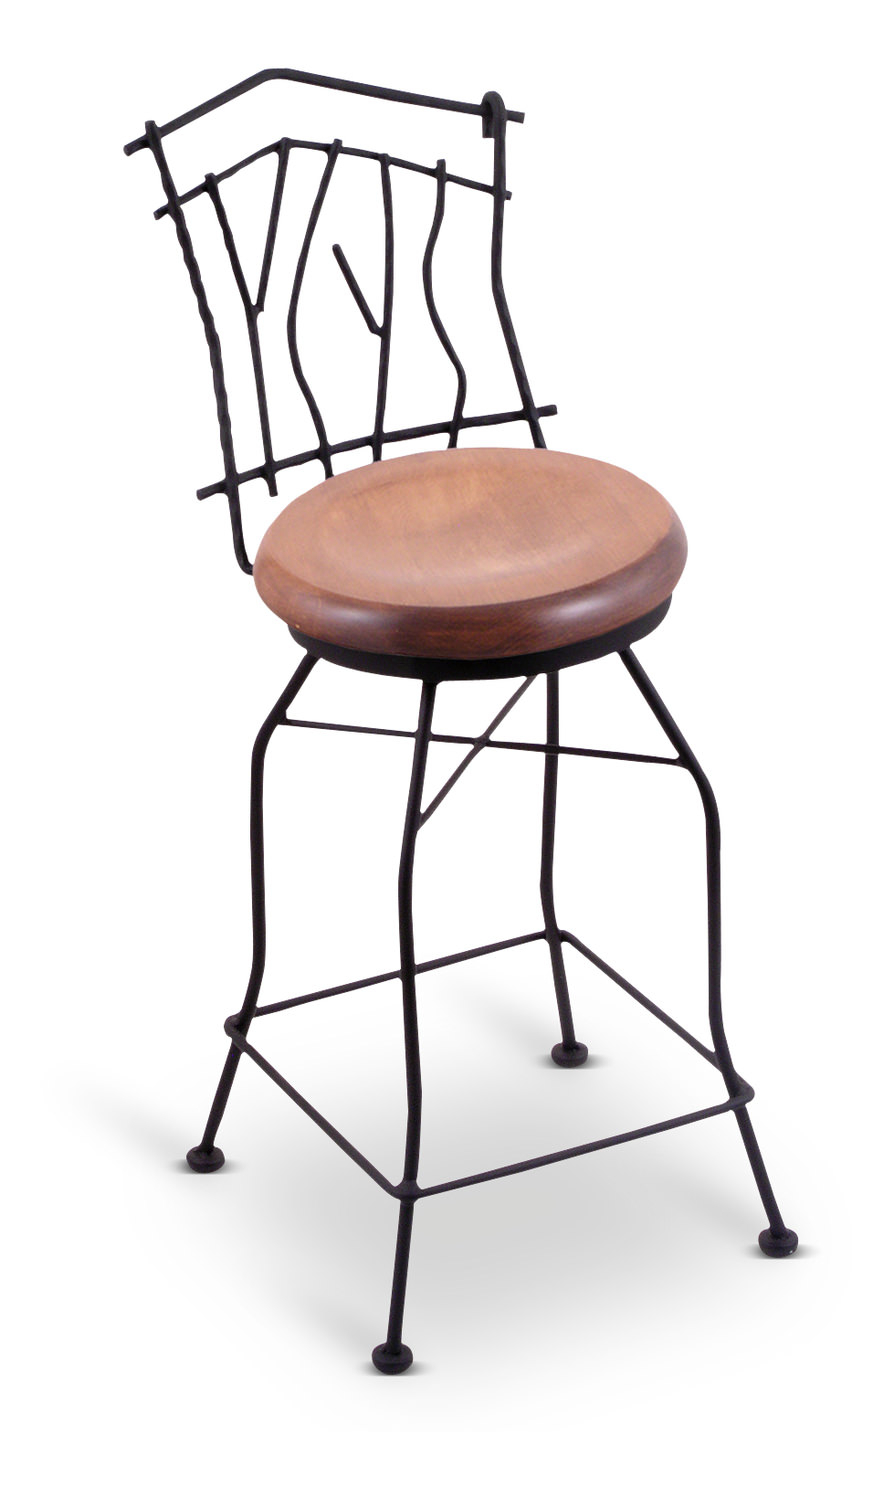 Aspen Swivel Bar Stool | Hom Furniture For Aspen Swivel Chairs (Image 4 of 20)